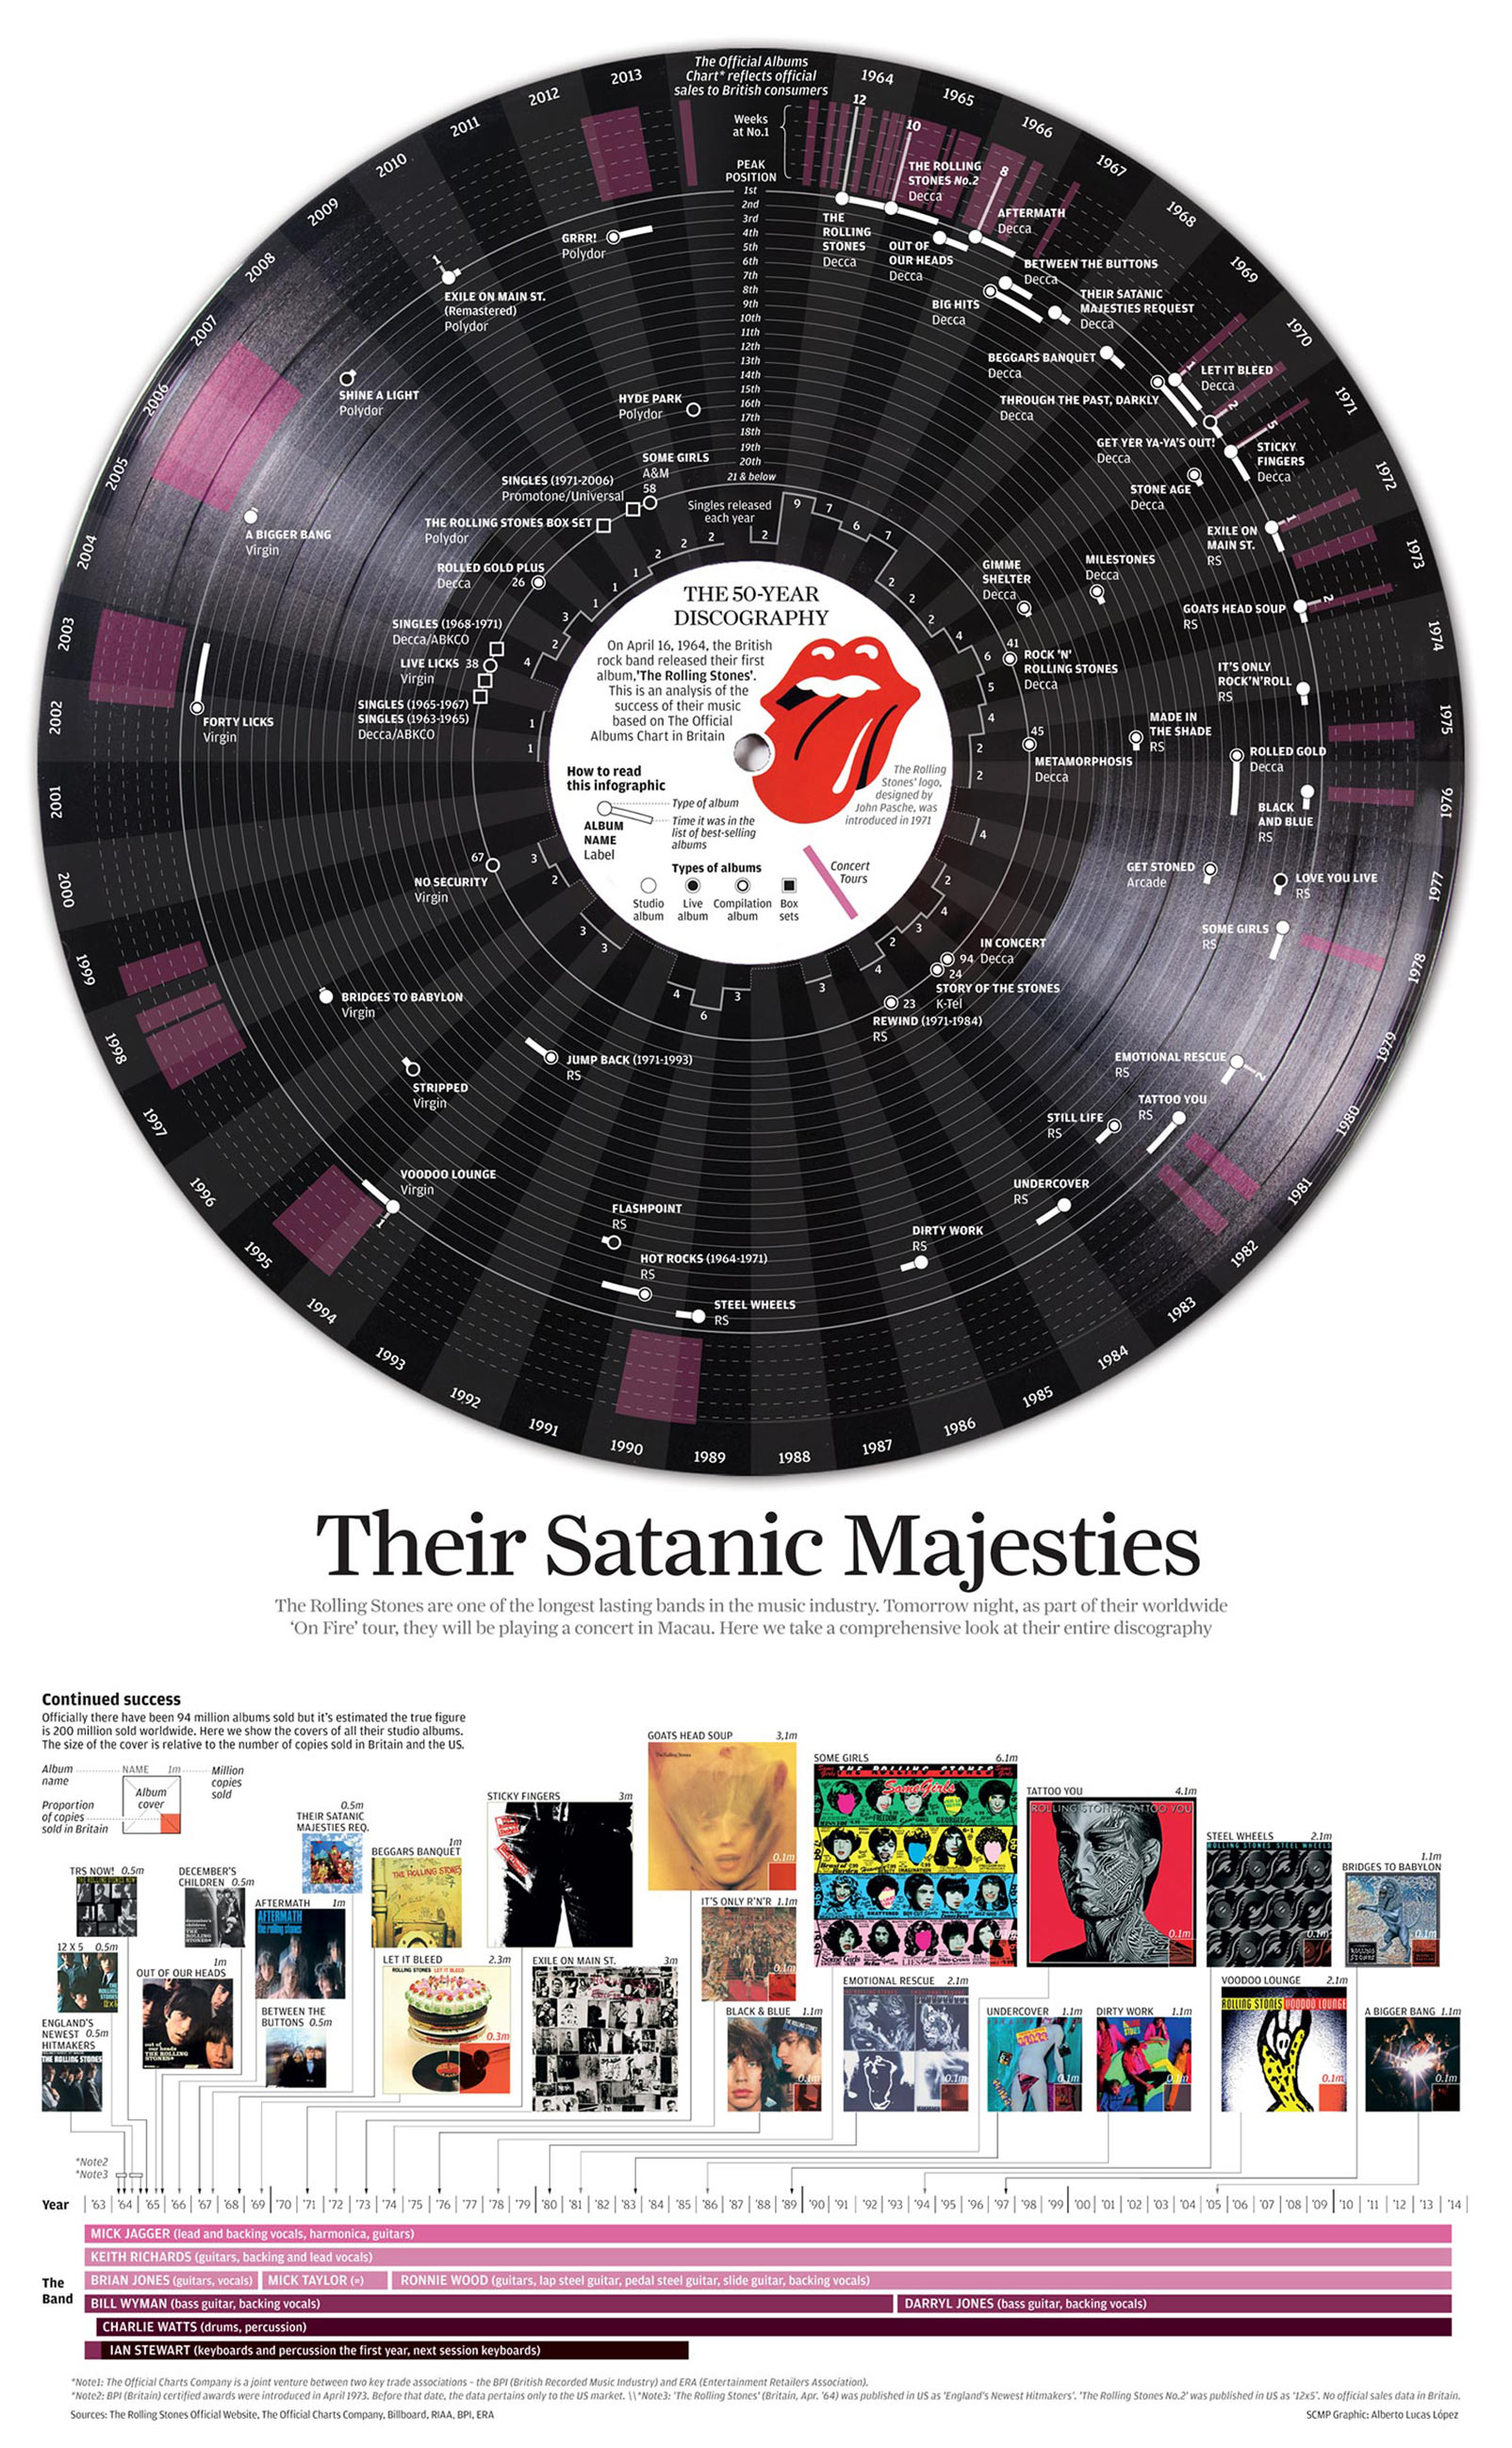 The 50 year discography of the rolling stones infographic 50 year discography of the rolling stones music infographic publicscrutiny Choice Image